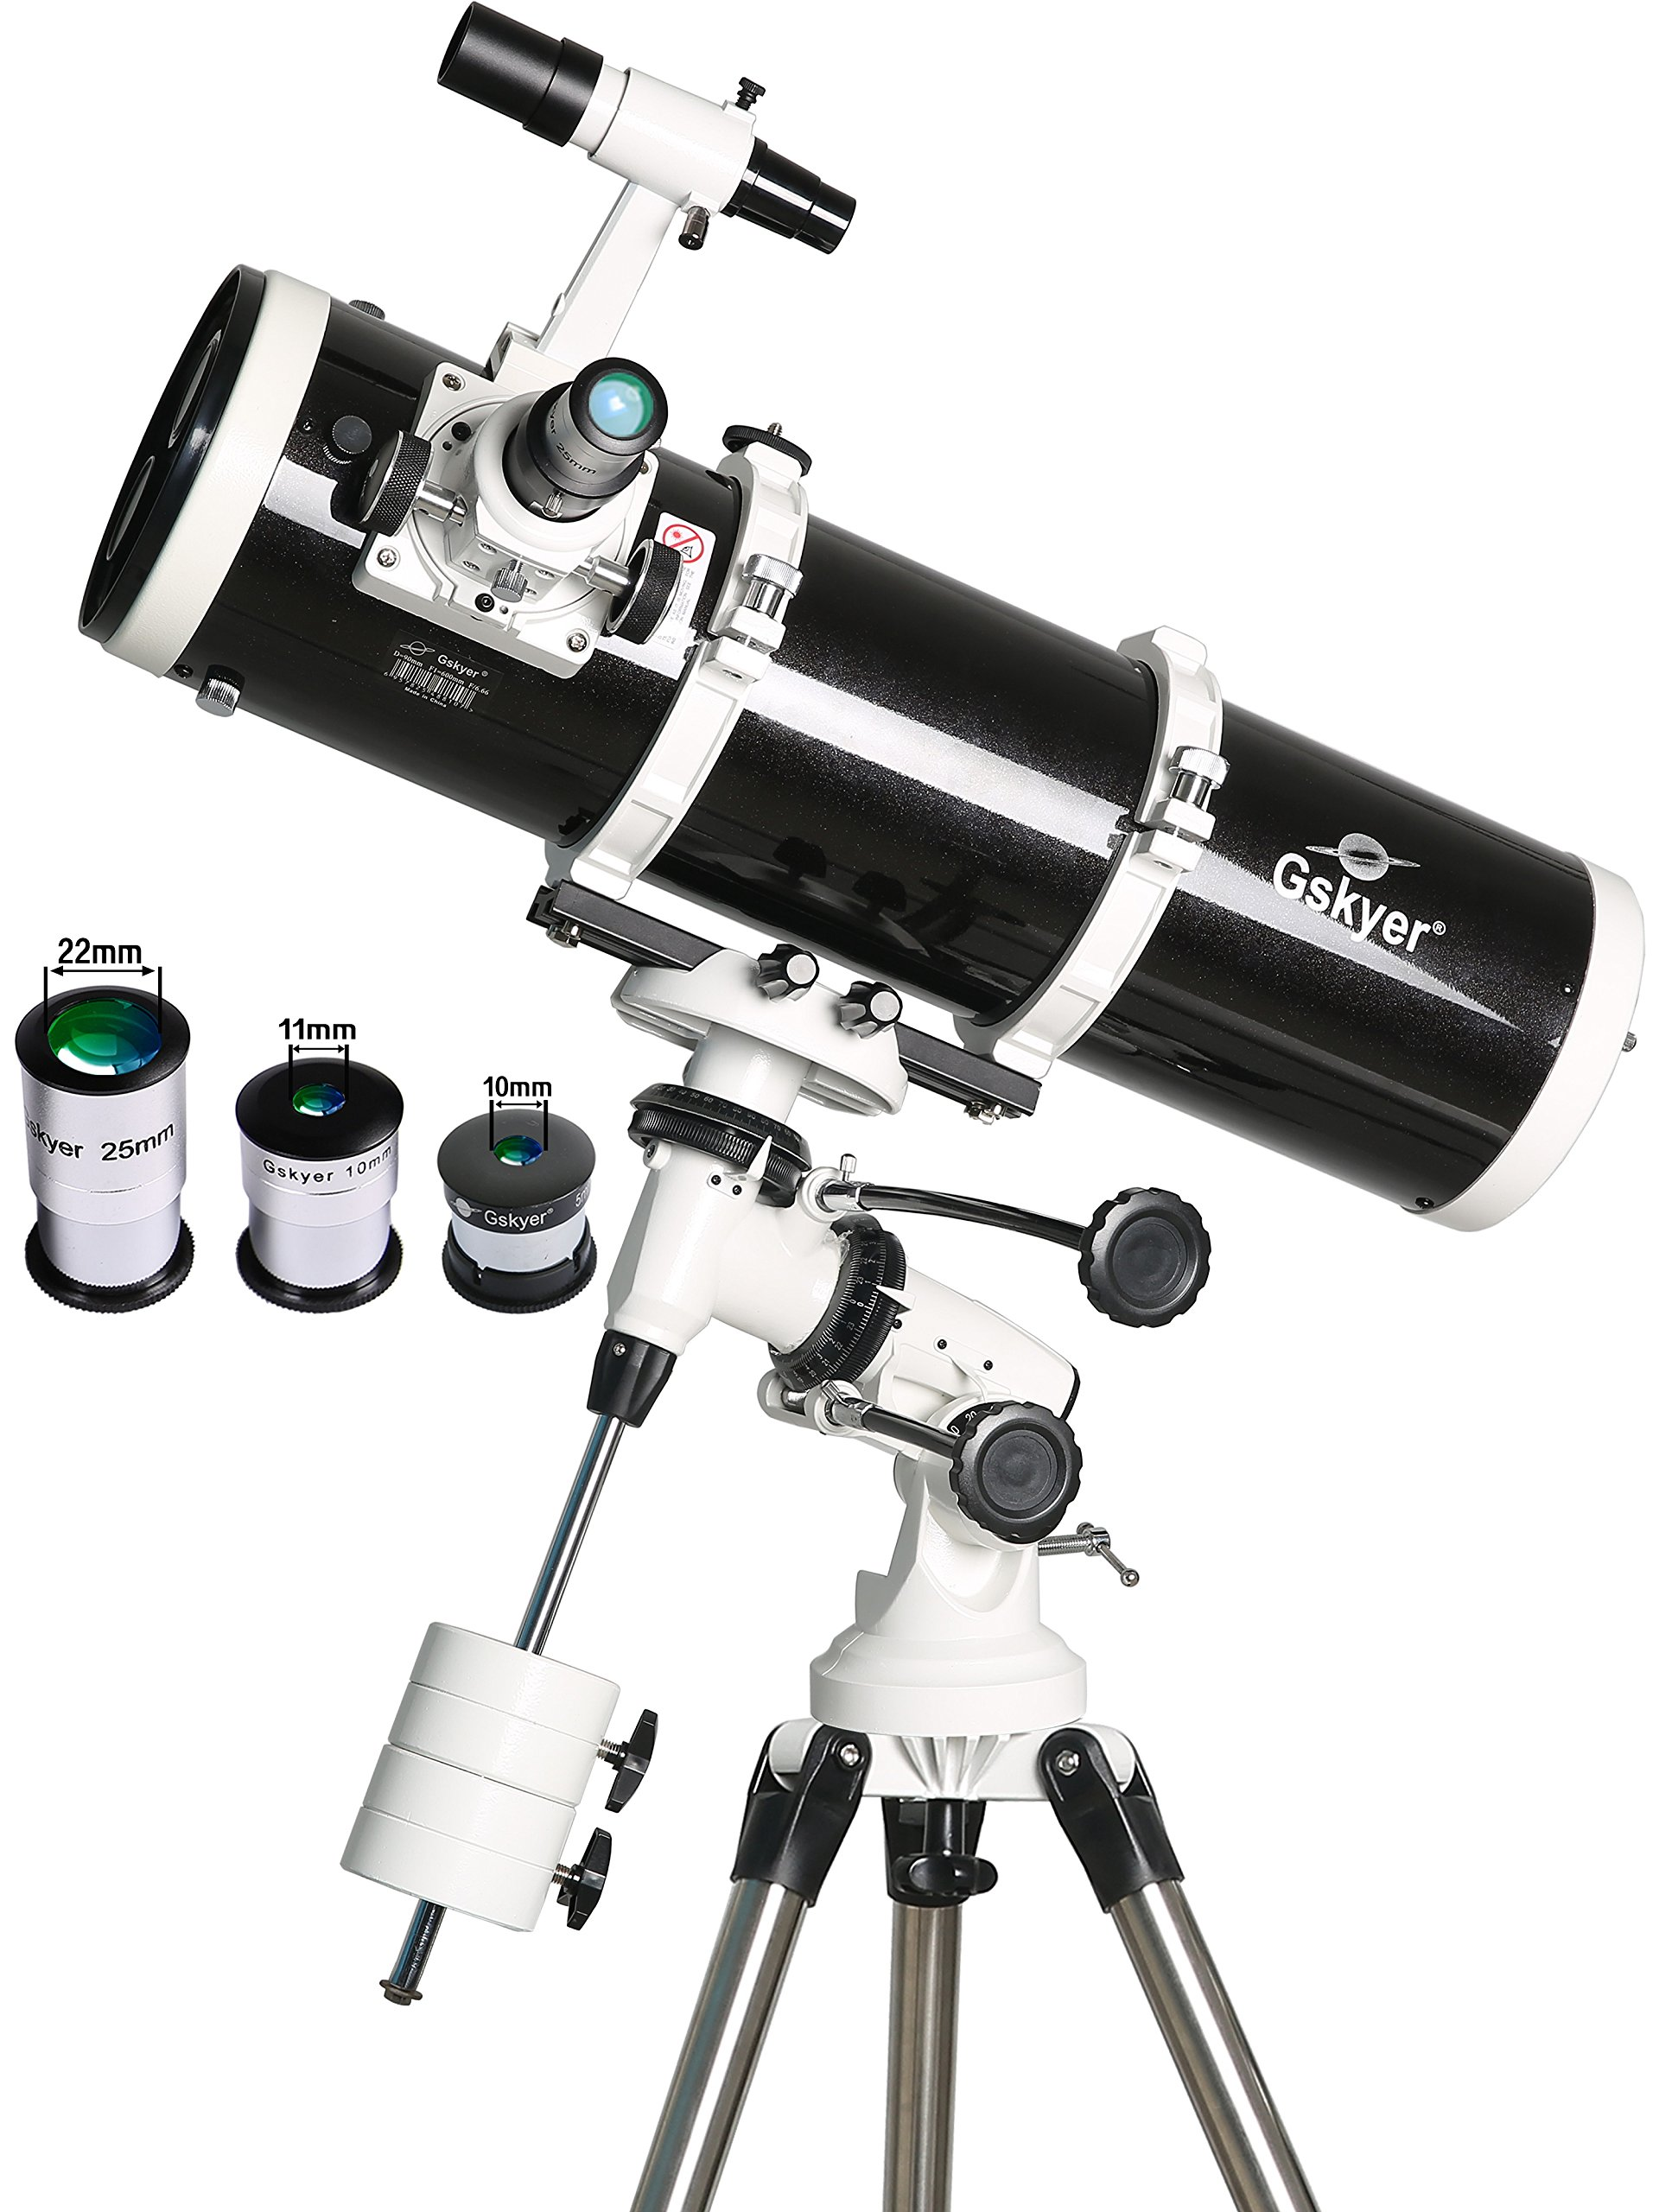 Gskyer Telescope, 130Eq Professional Astronomical Reflector Telescope, German Technology Scope